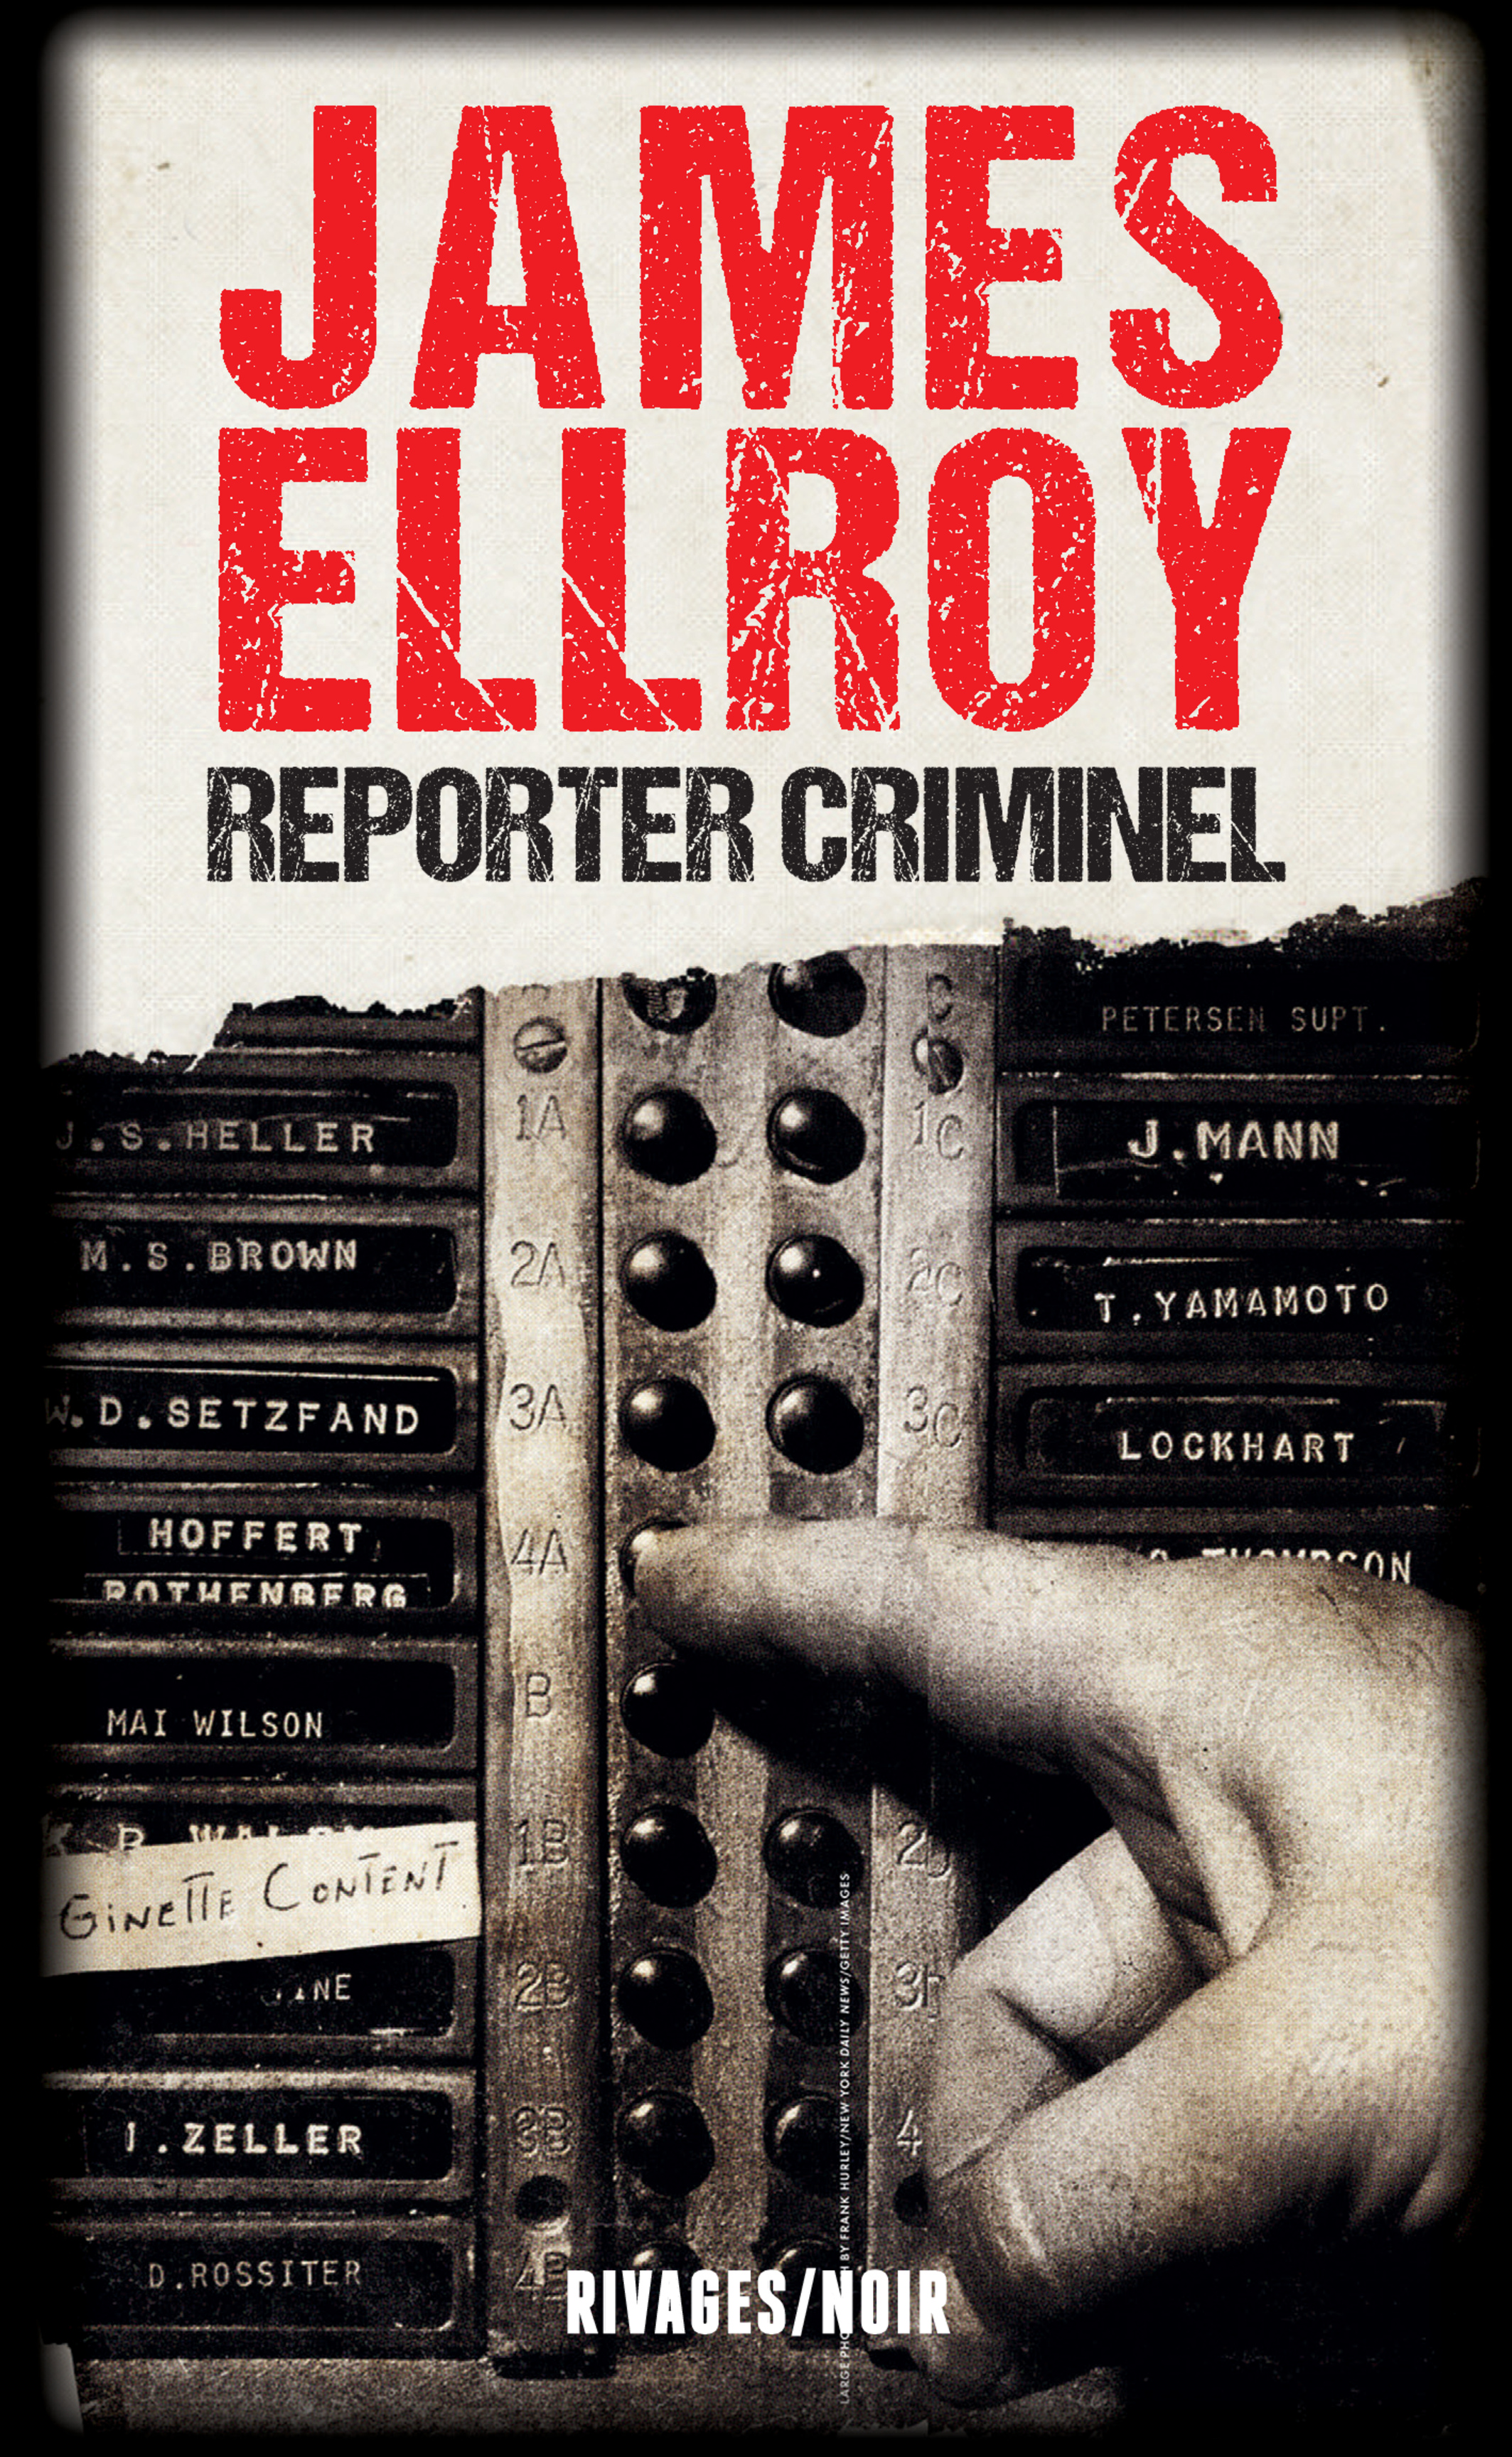 Reporter criminel | Ellroy, James